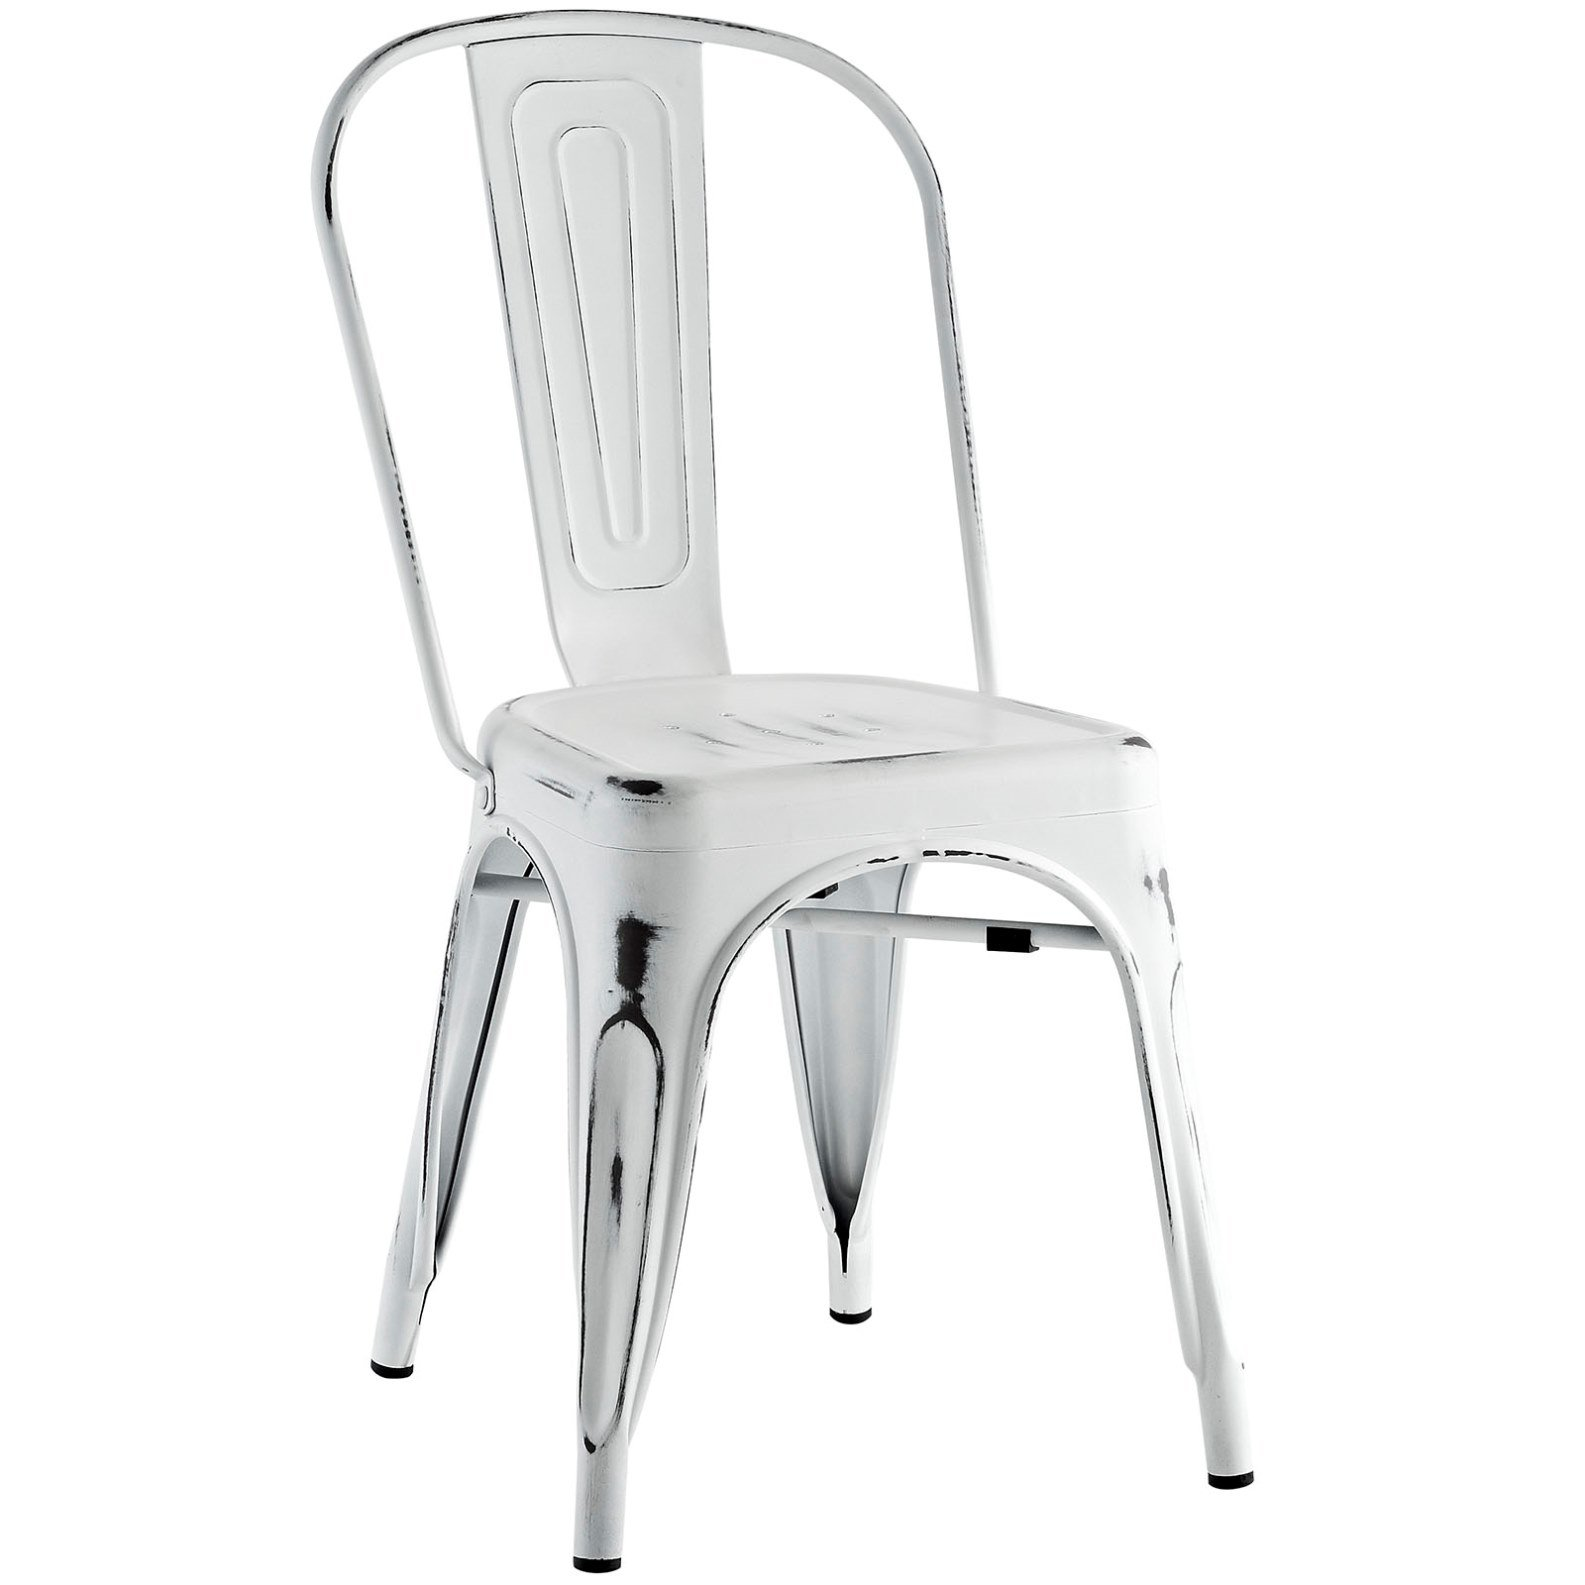 Modern Contemporary Industrial Distressed Antique Vintage Style Kitchen Dining Chair, White, Metal by America Luxury - Chairs